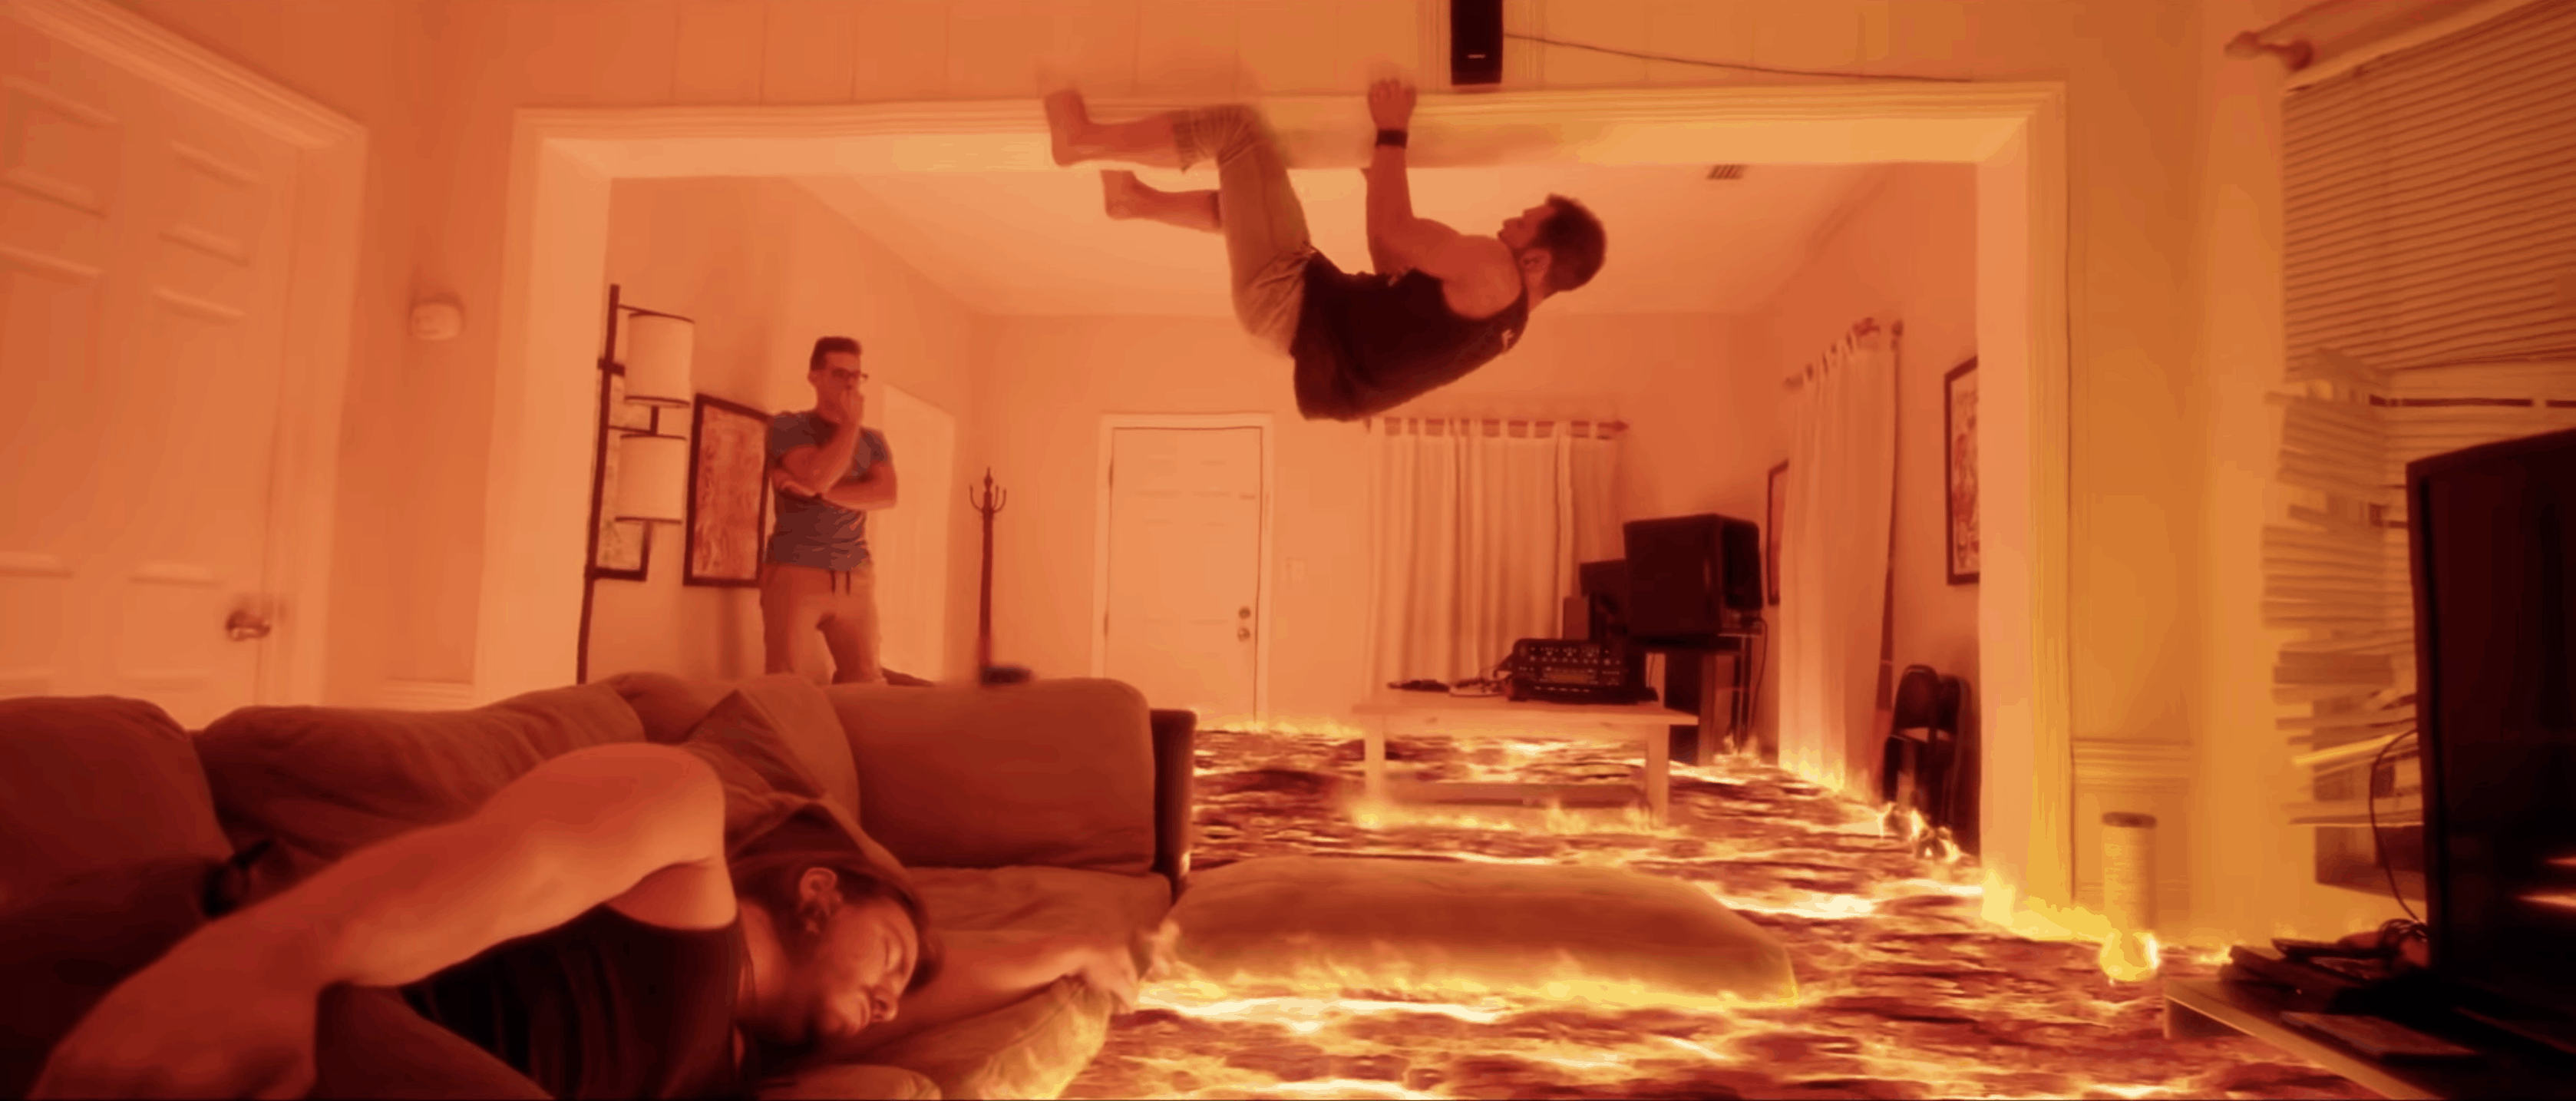 Floor is Lava video in real VFX effect